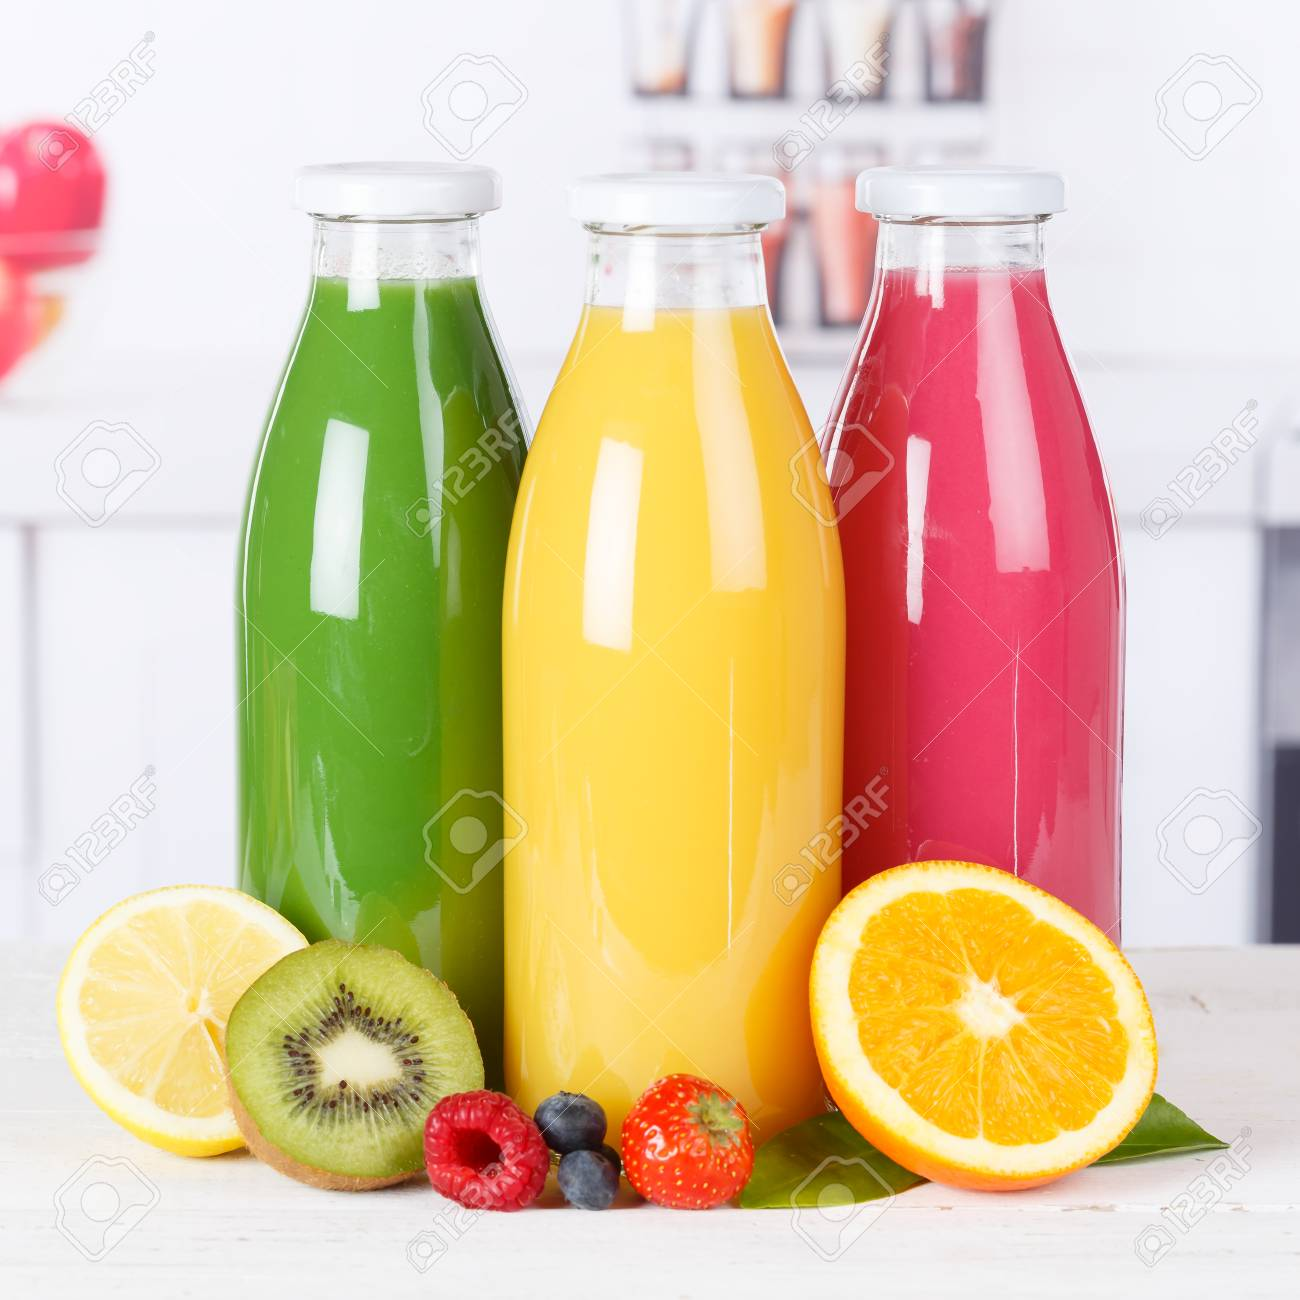 Juice smoothie orange smoothies in kitchen bottle square fruit fruits fresh drink stock photo 100986471